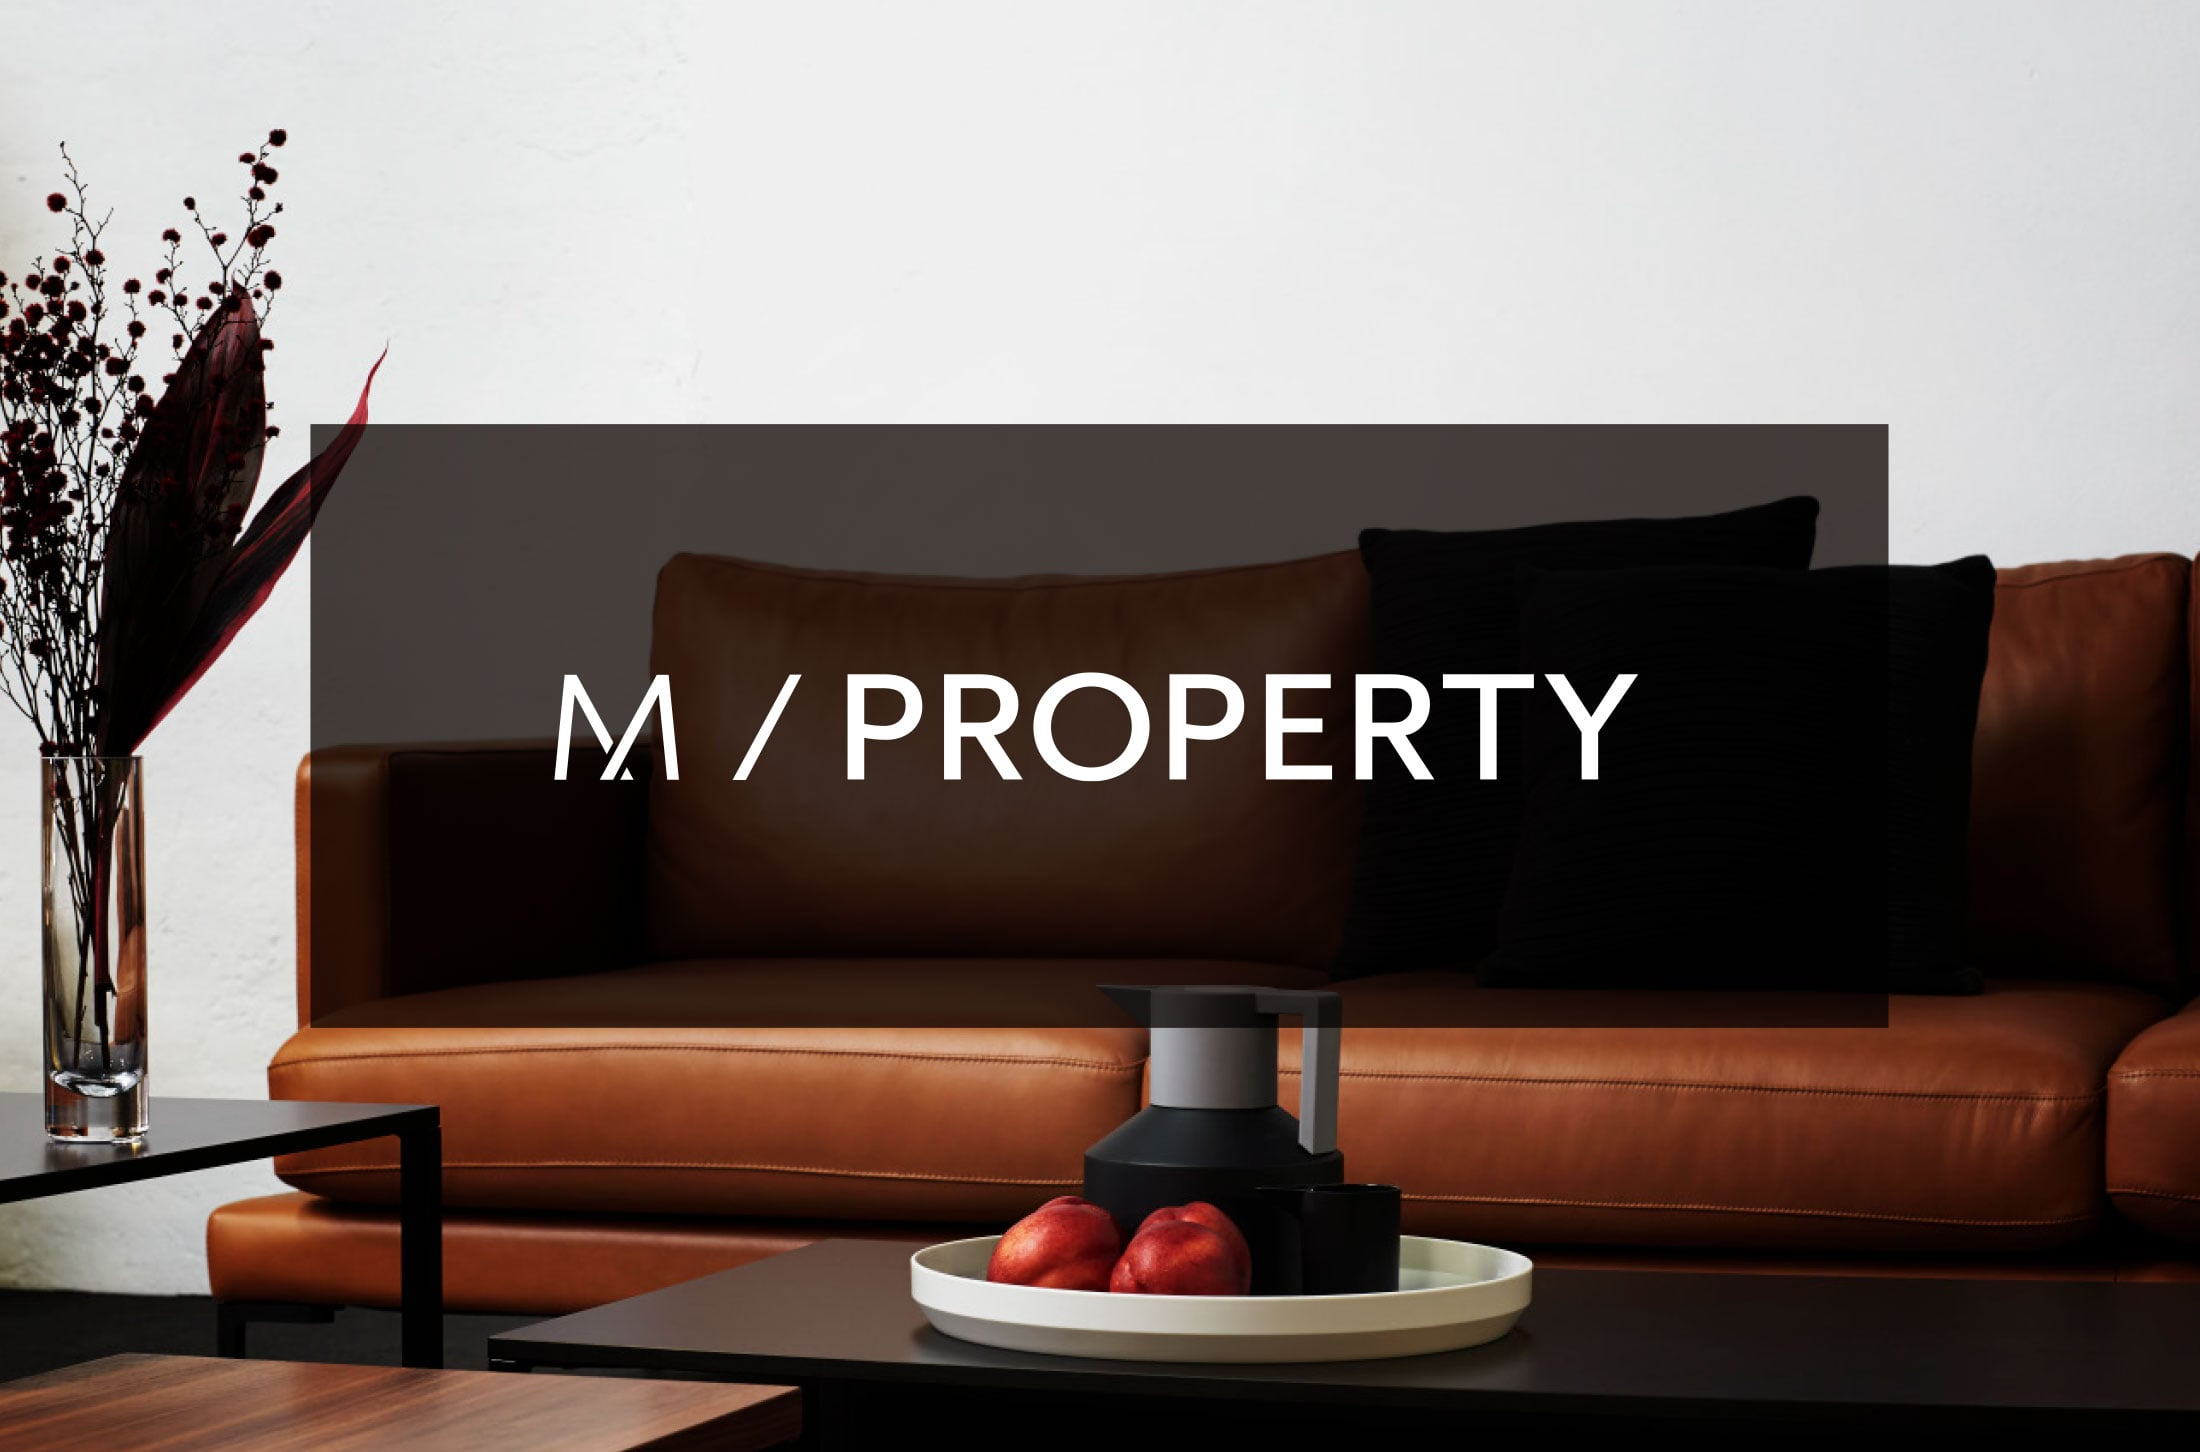 MPROPERTY.jpg